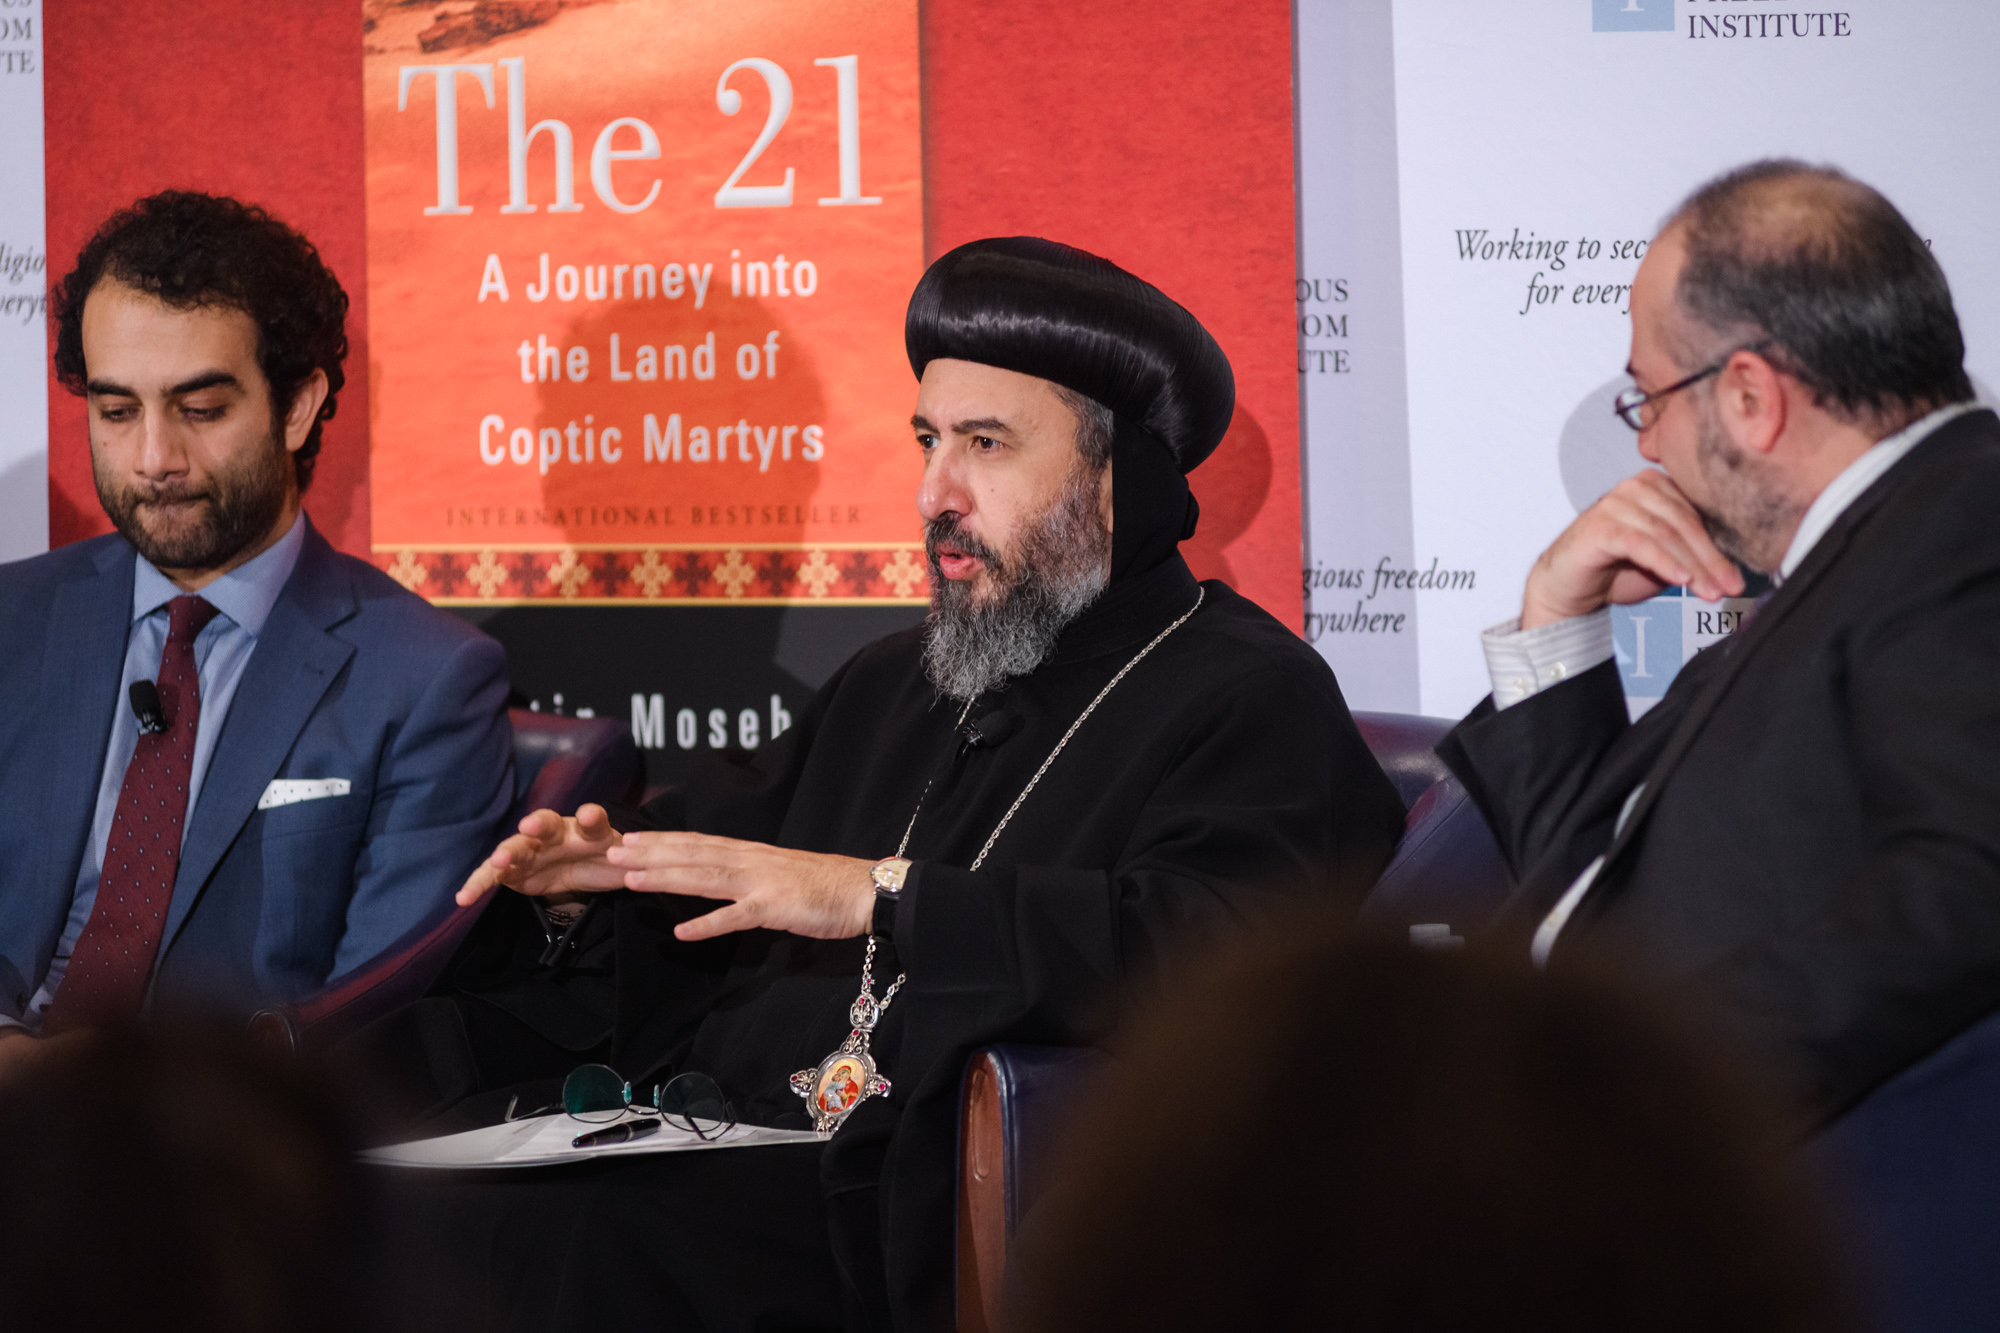 131 - February 12th 2019 Religious Freedom Institute at National Press Club - Photo Nathan Mitchell.jpg